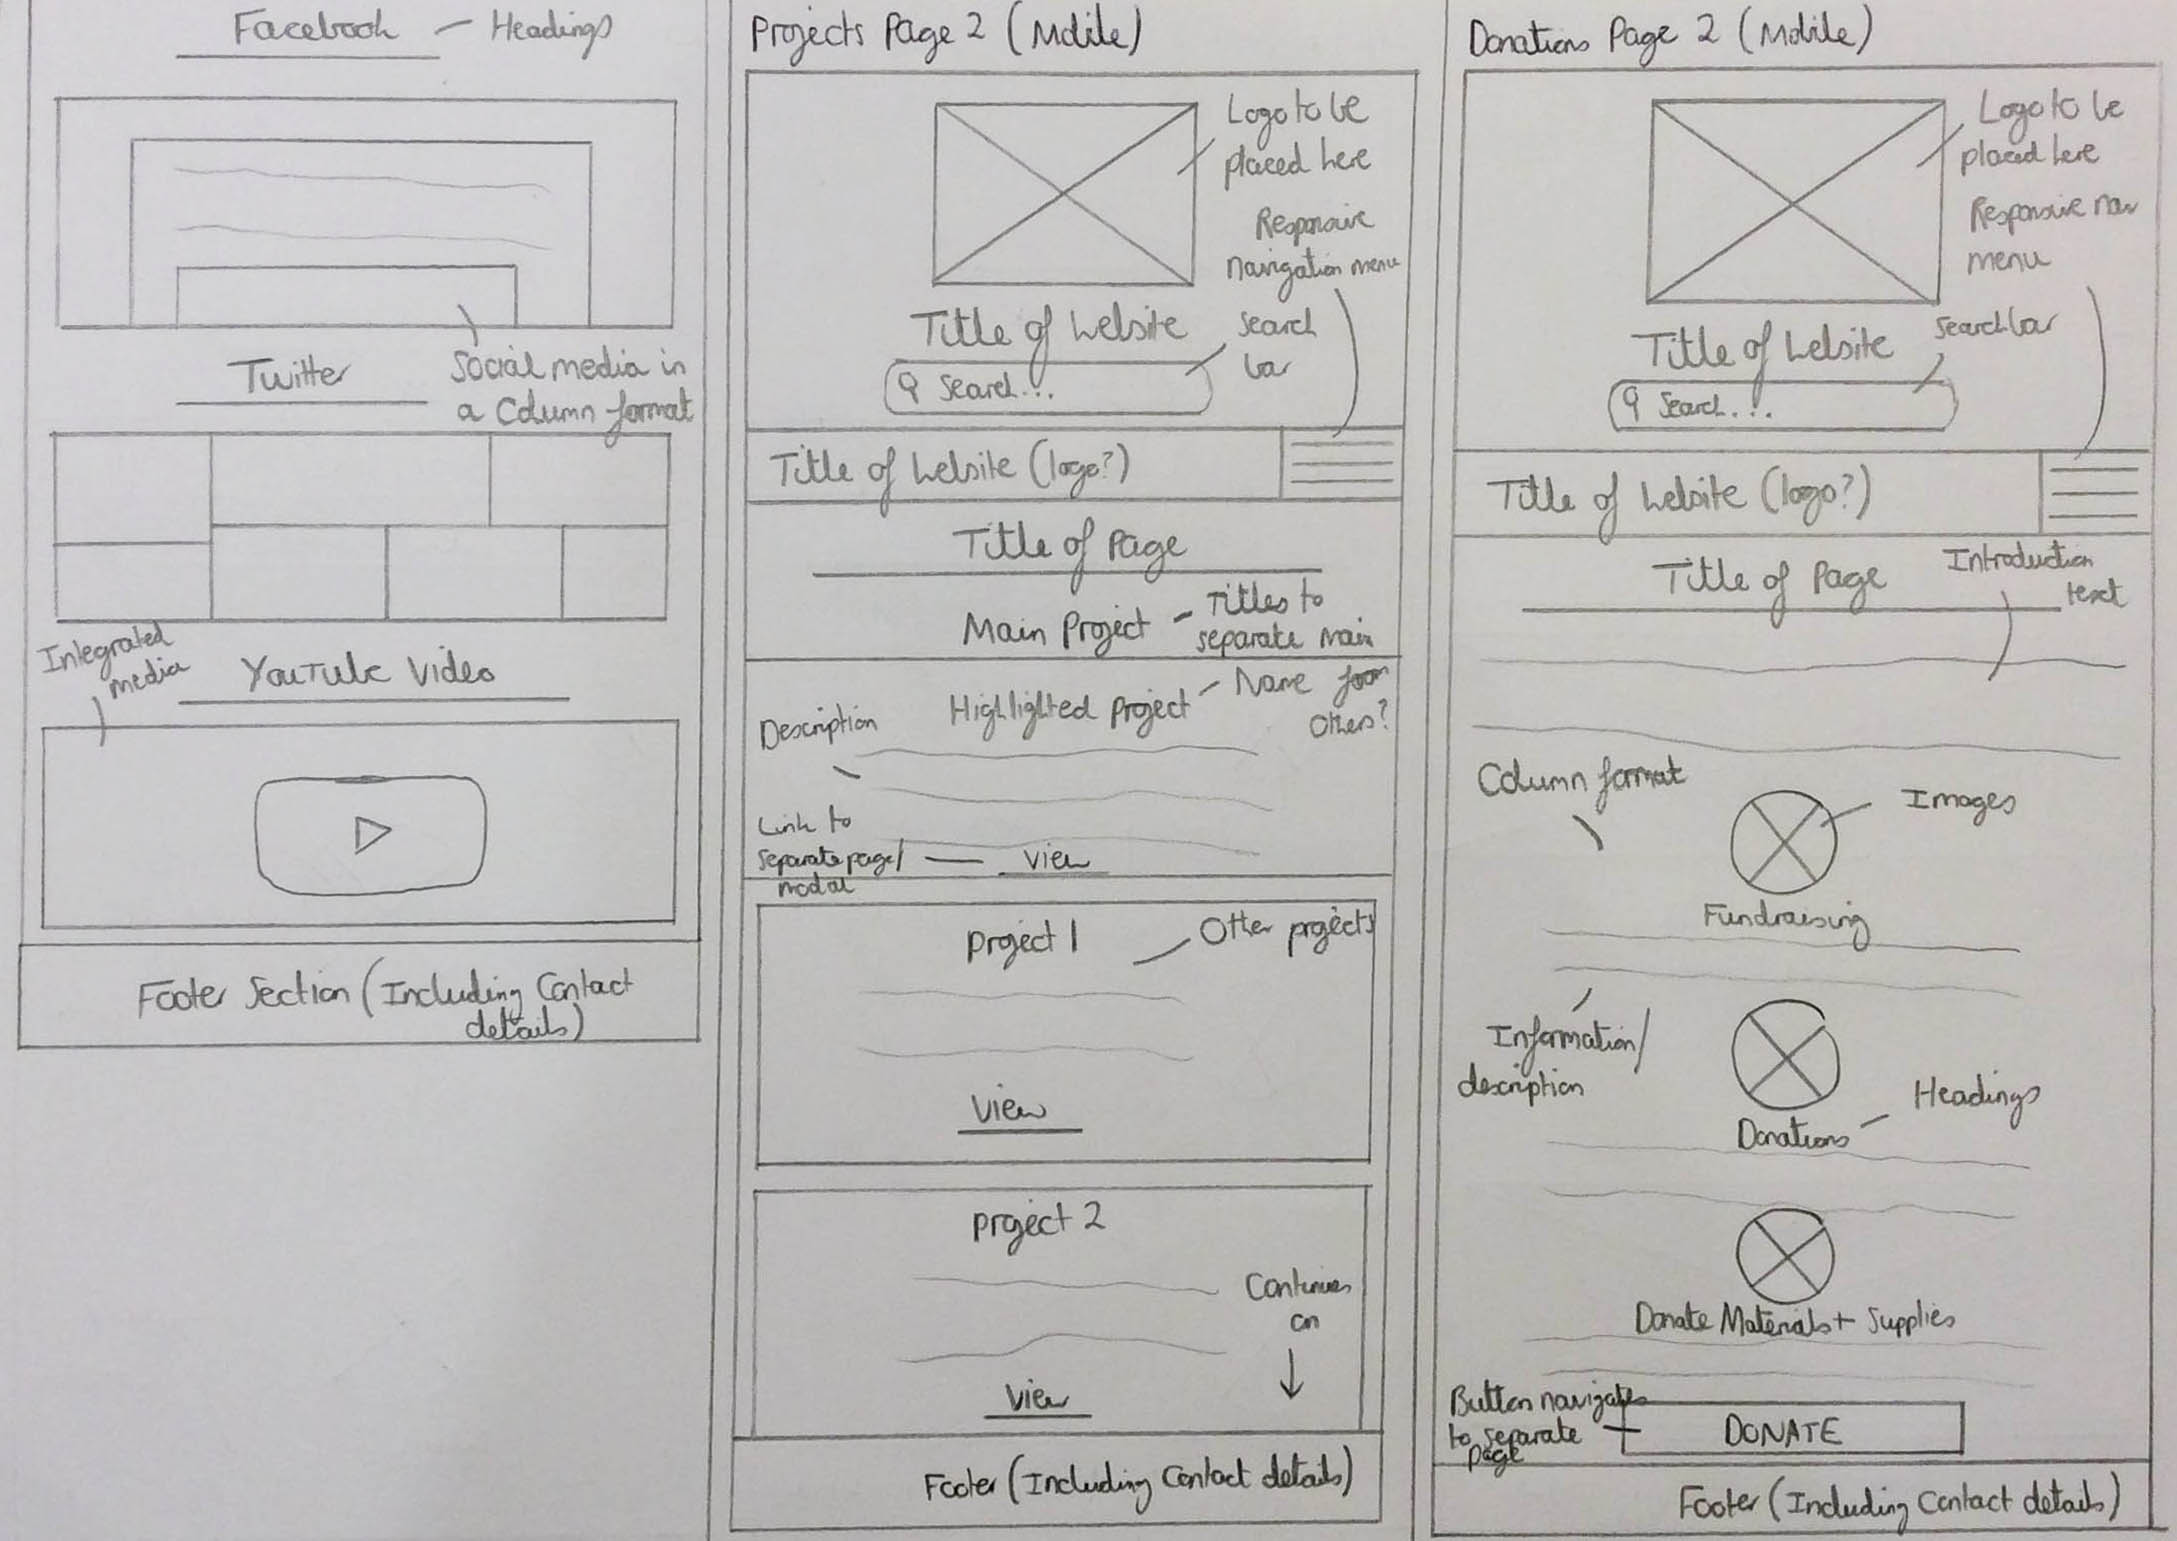 The Sketched 'Who We Are' (Part 2), Projects and Donations Pages Wireframes